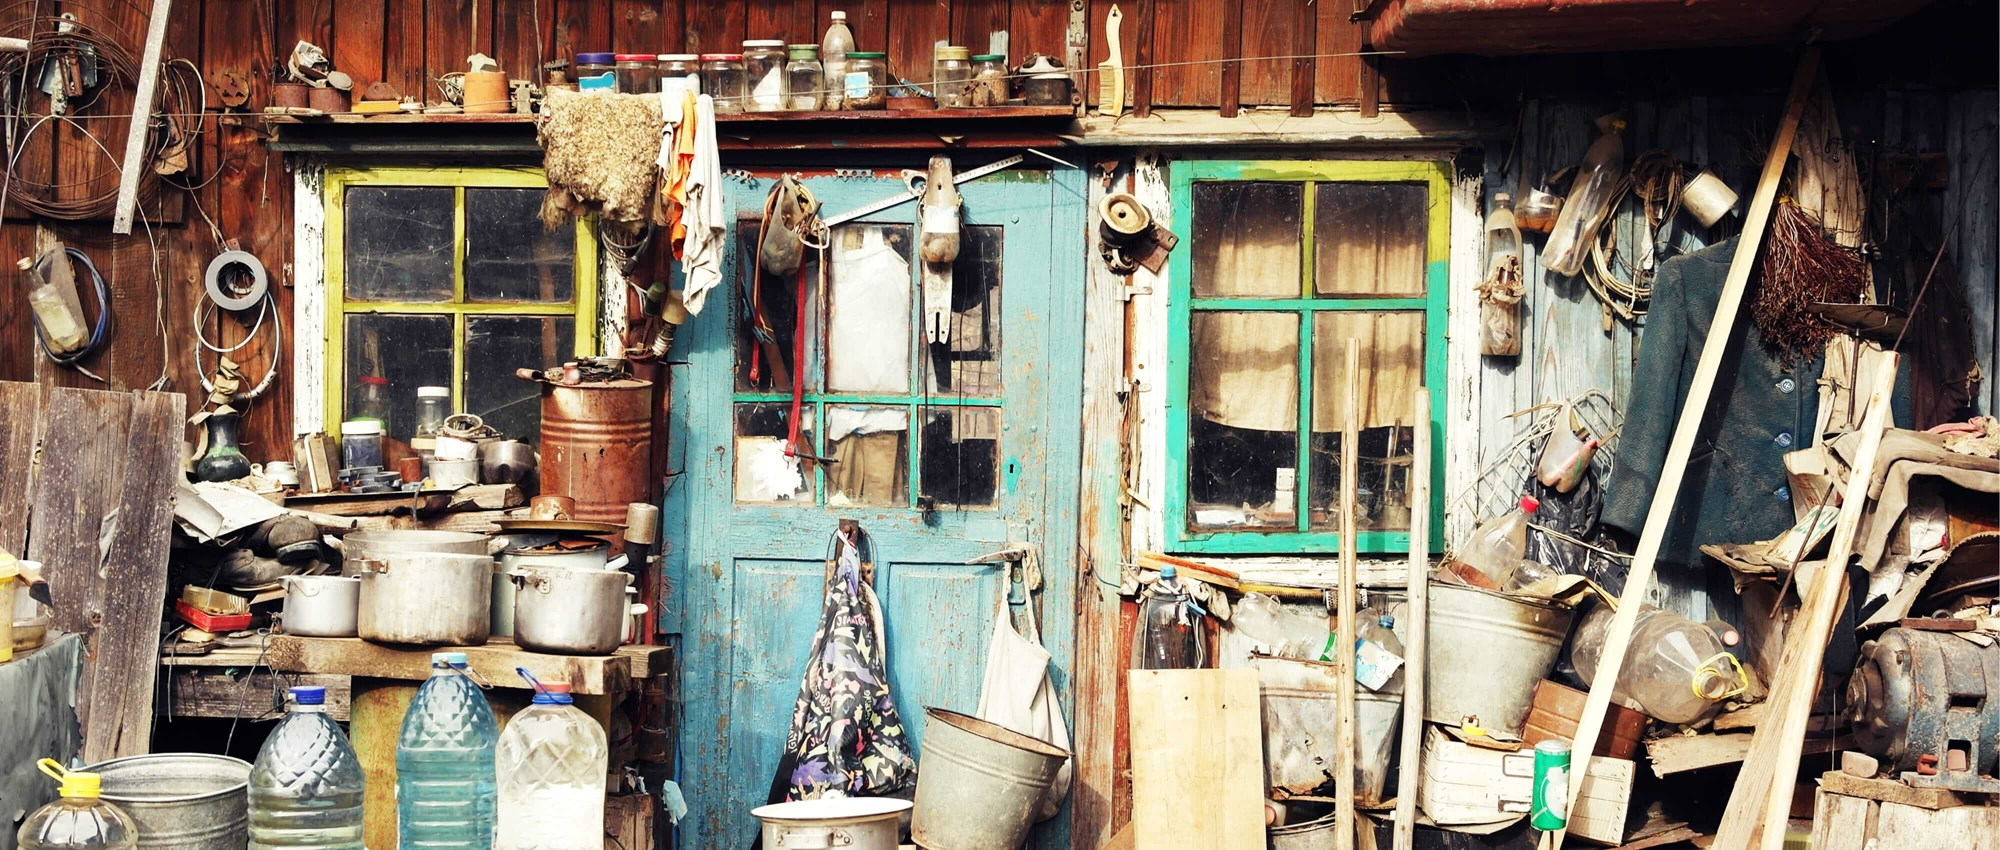 Clutter outside a house